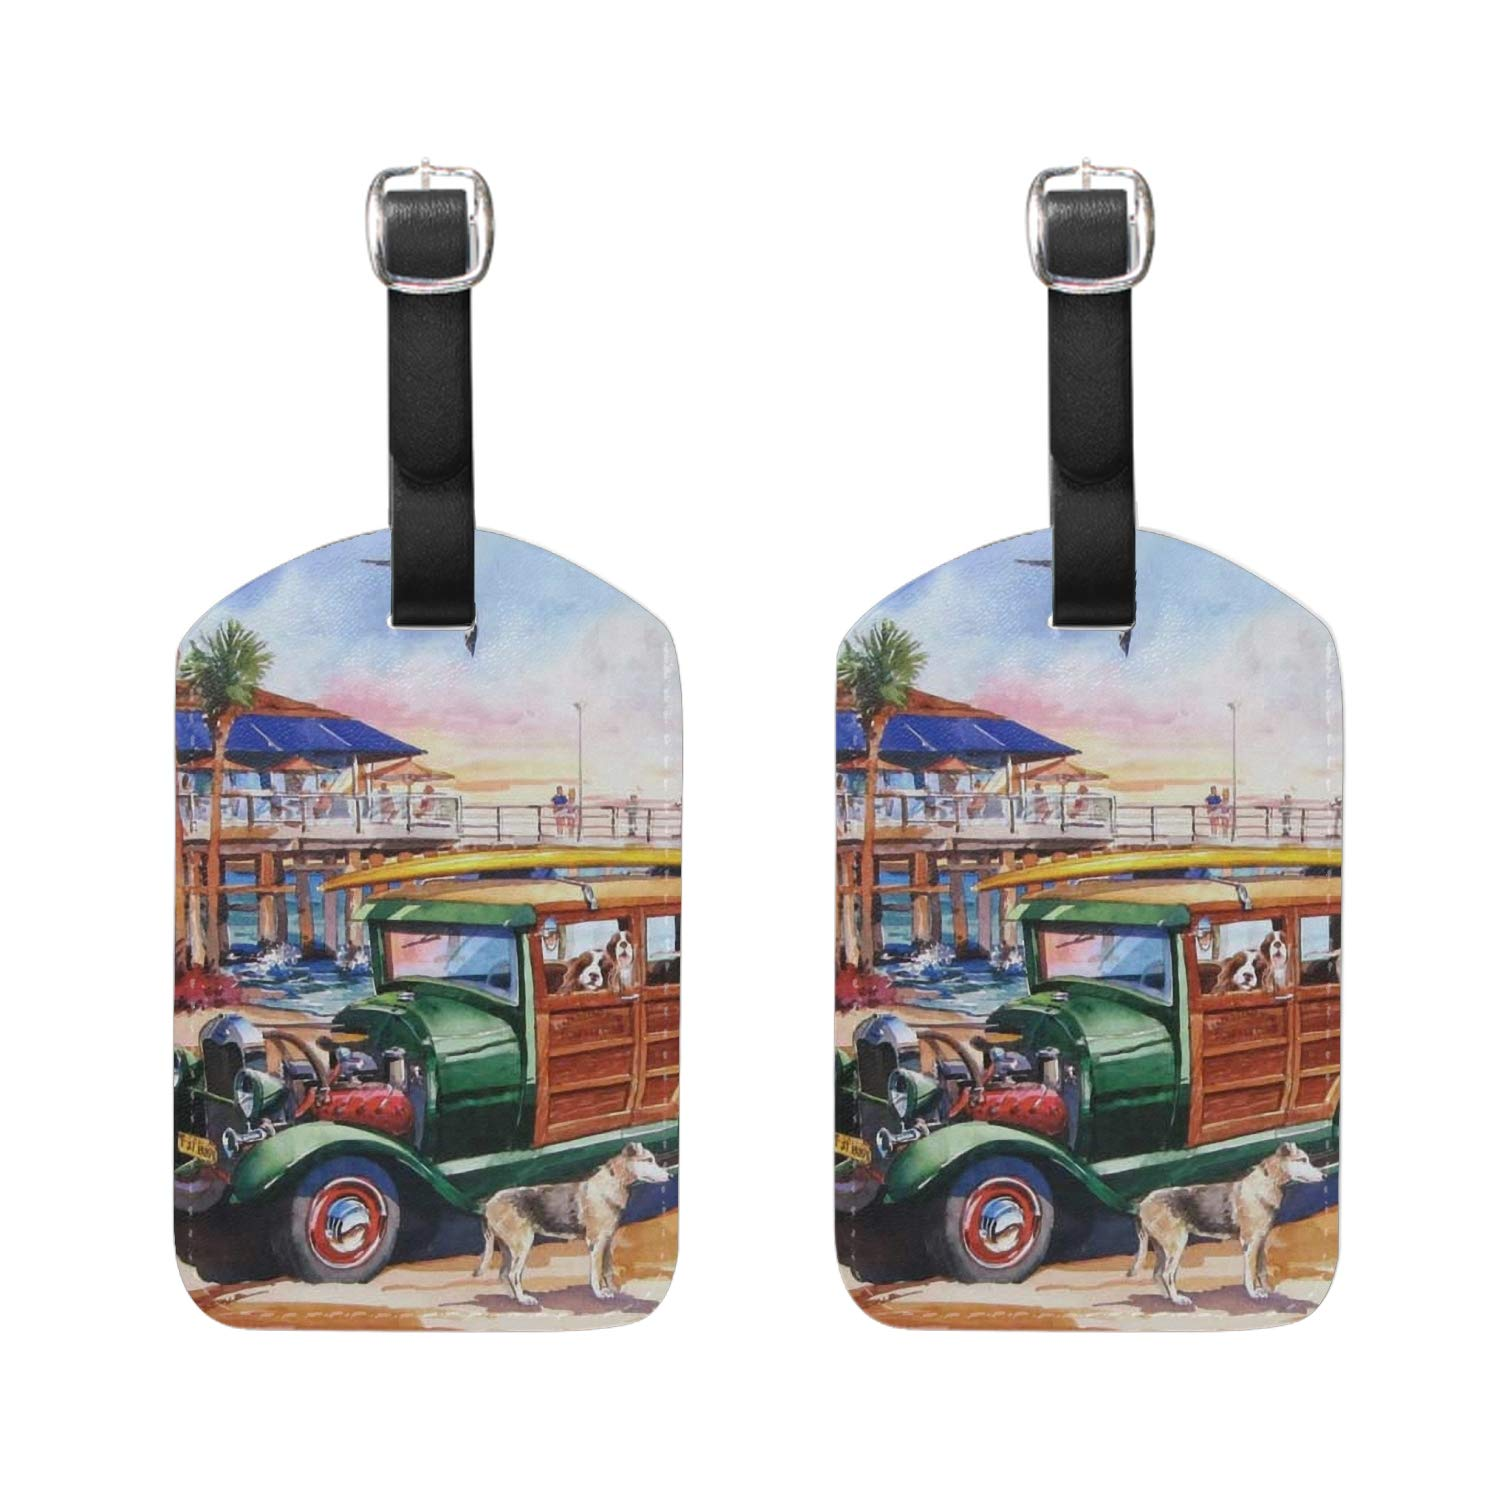 Conch In Sun Print Luggage Identifiers with Strap Closure